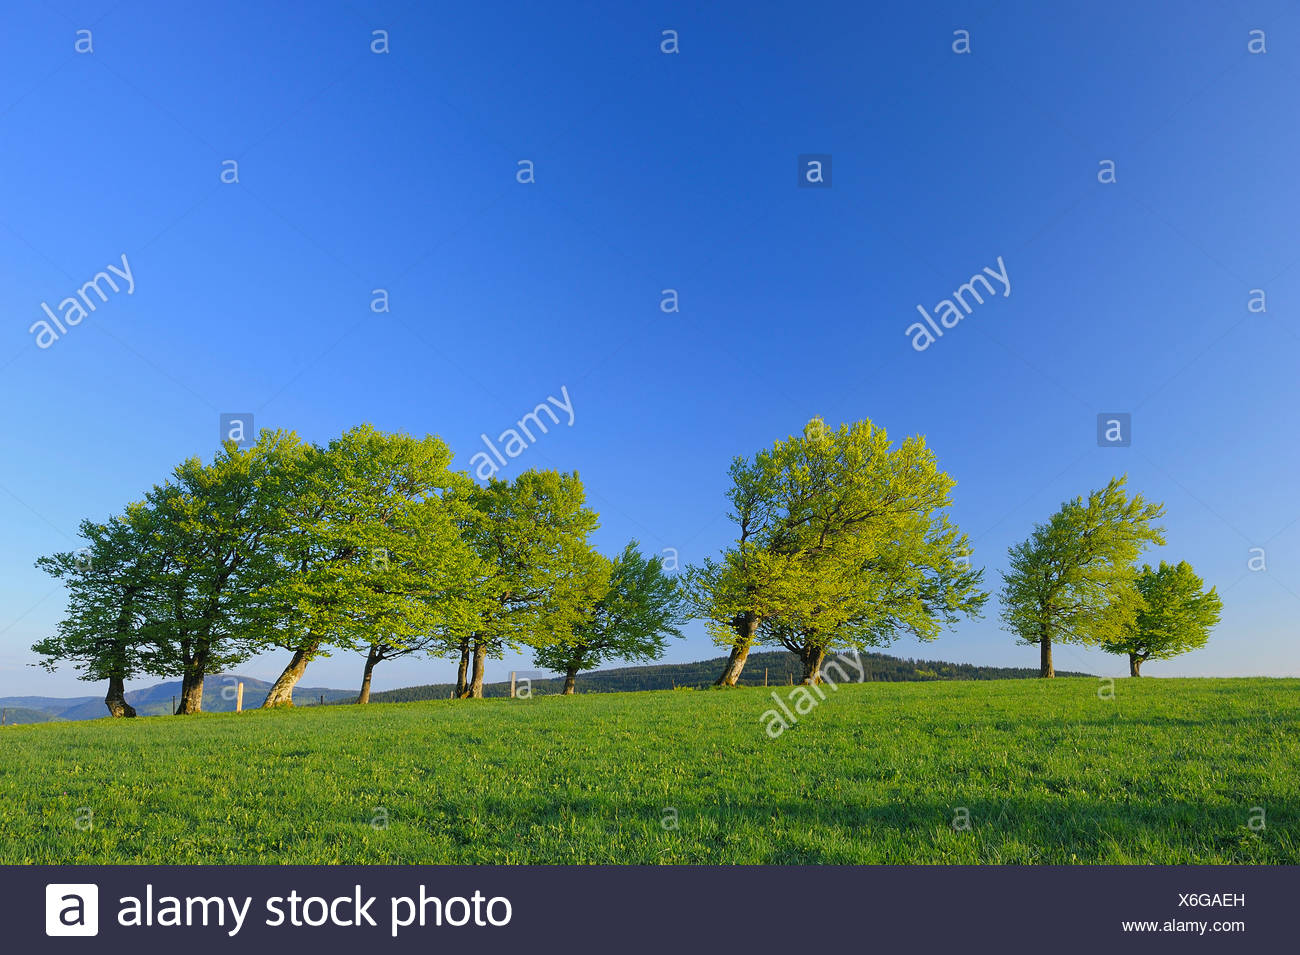 common beech (Fagus sylvatica), skew-whiff beeches in a meadows in spring, Germany, Baden-Wuerttemberg, Black Forest, Schauinsland - Stock Image